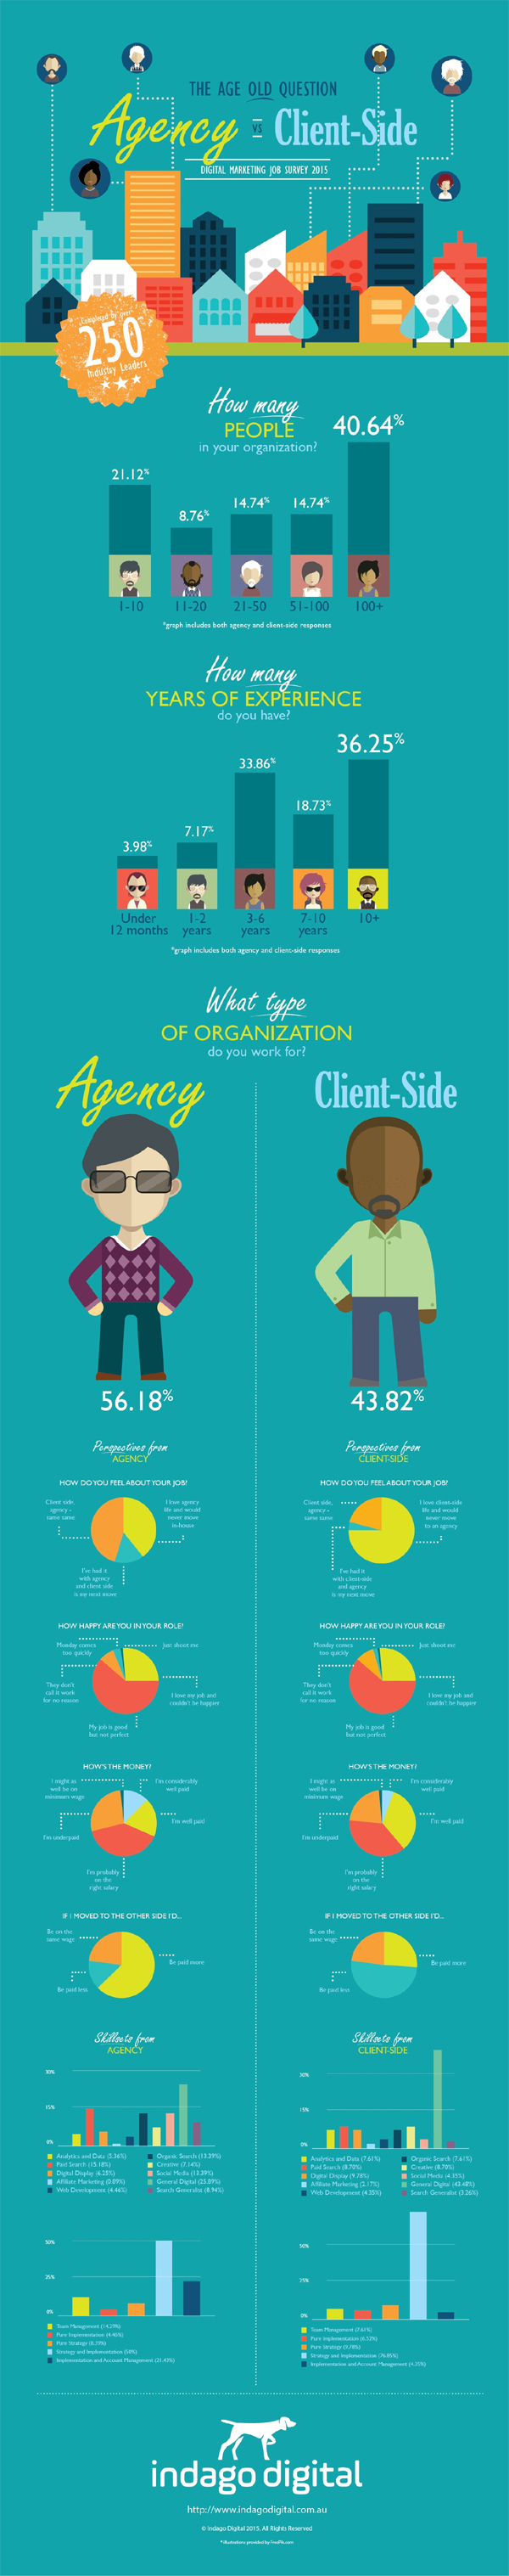 Agency vs Client-side infographic